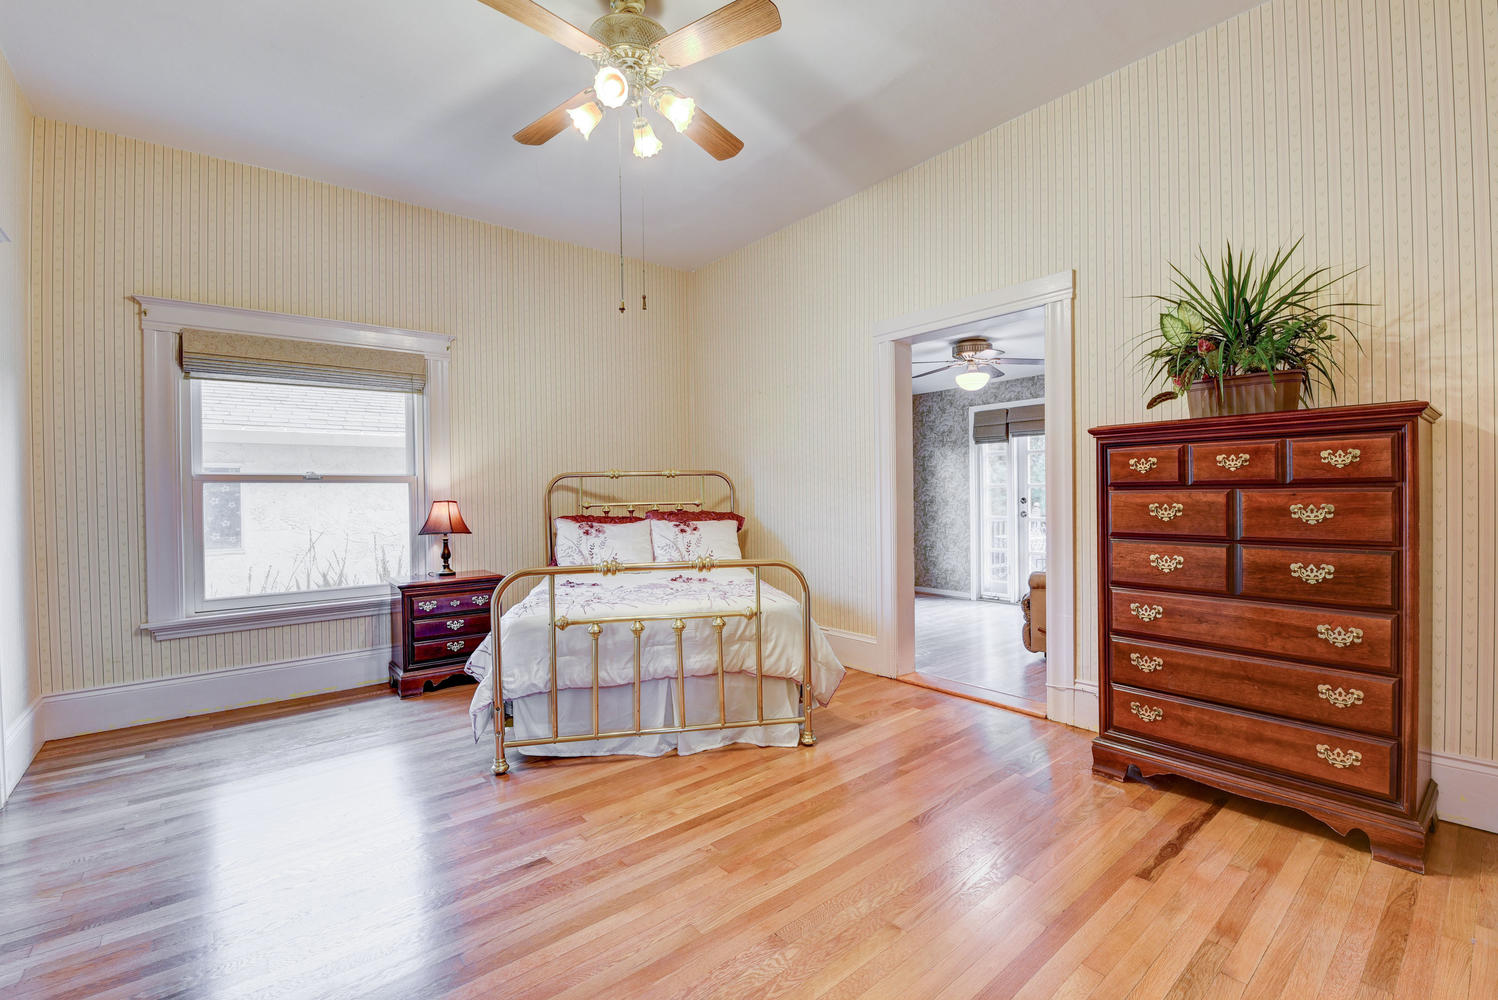 713 South I St-small-015-6-Master Bedroom-666×445-72dpi